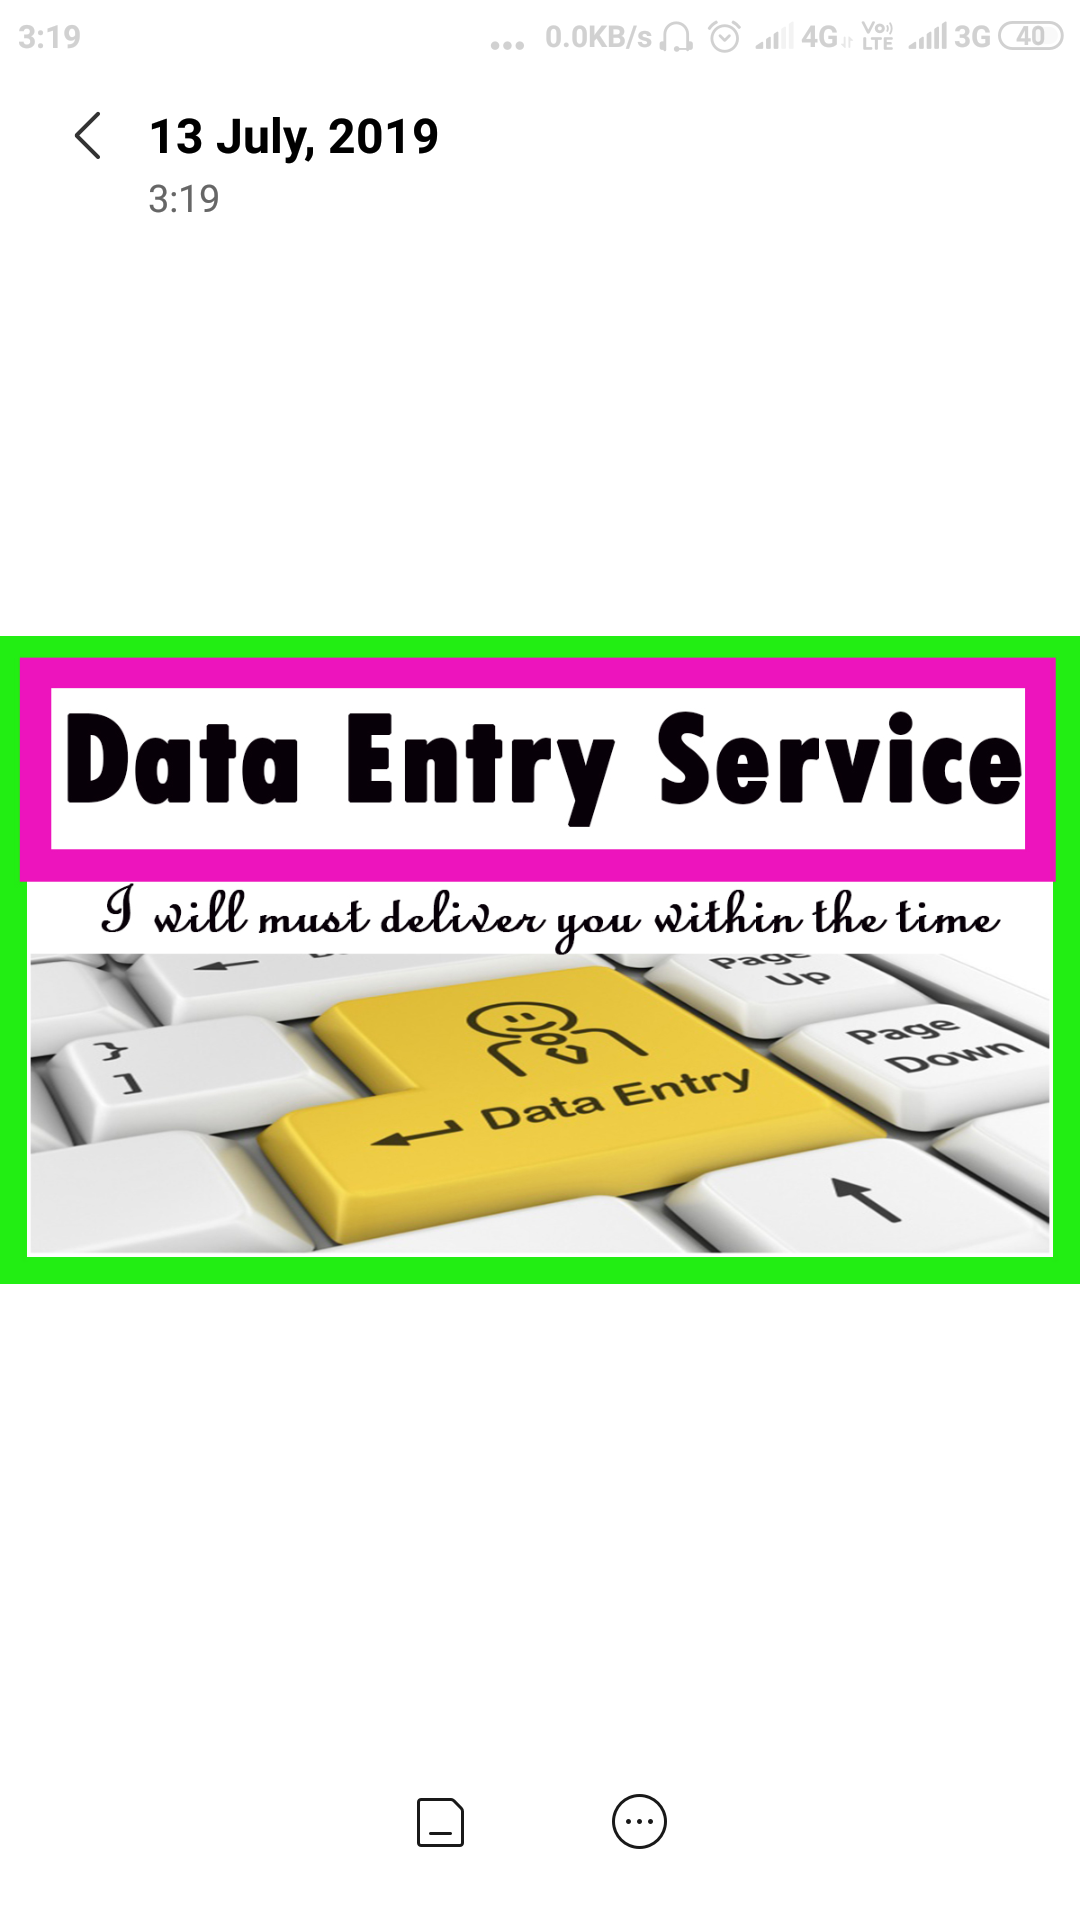 Data entry work online and off line